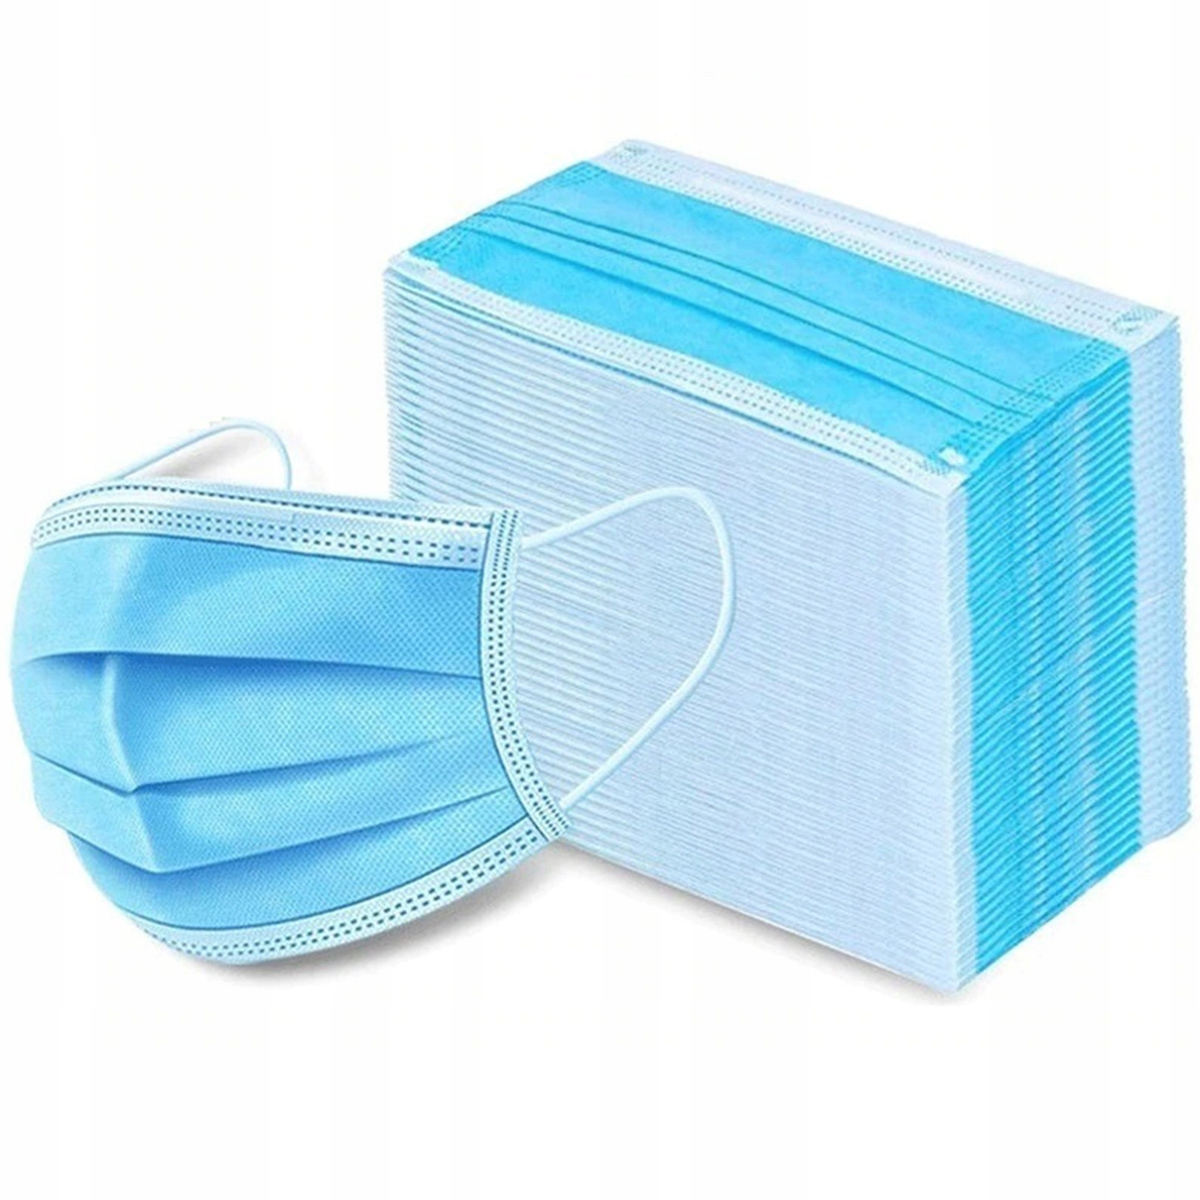 MASK PROTECTIVE SURGICAL MASK 3IN 100 штук